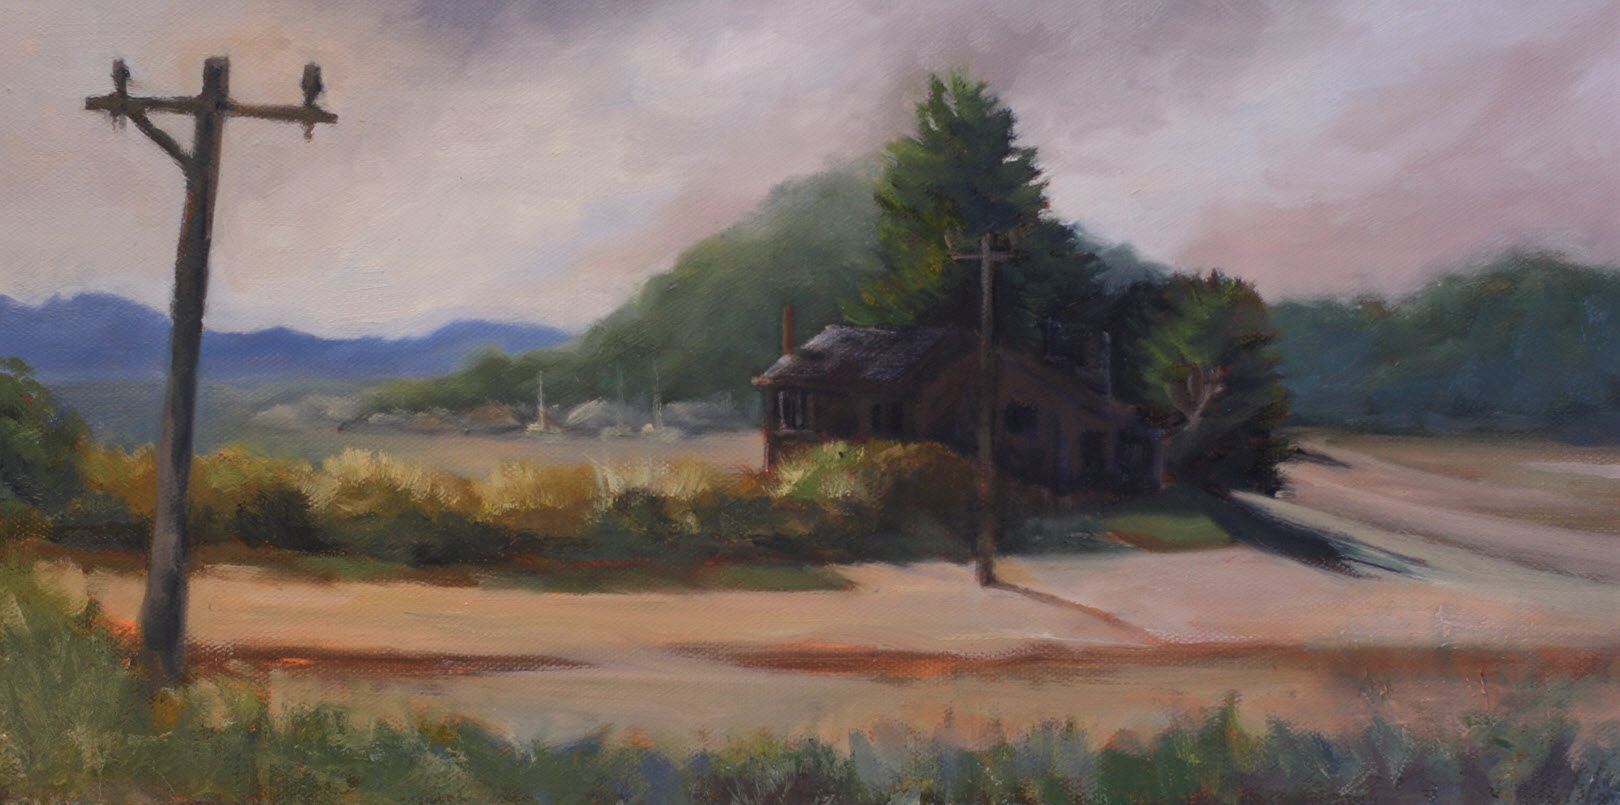 Ligar Bay Bach  (2019, Week 2). 205 mm x 400 mm. Oil on Canvas.